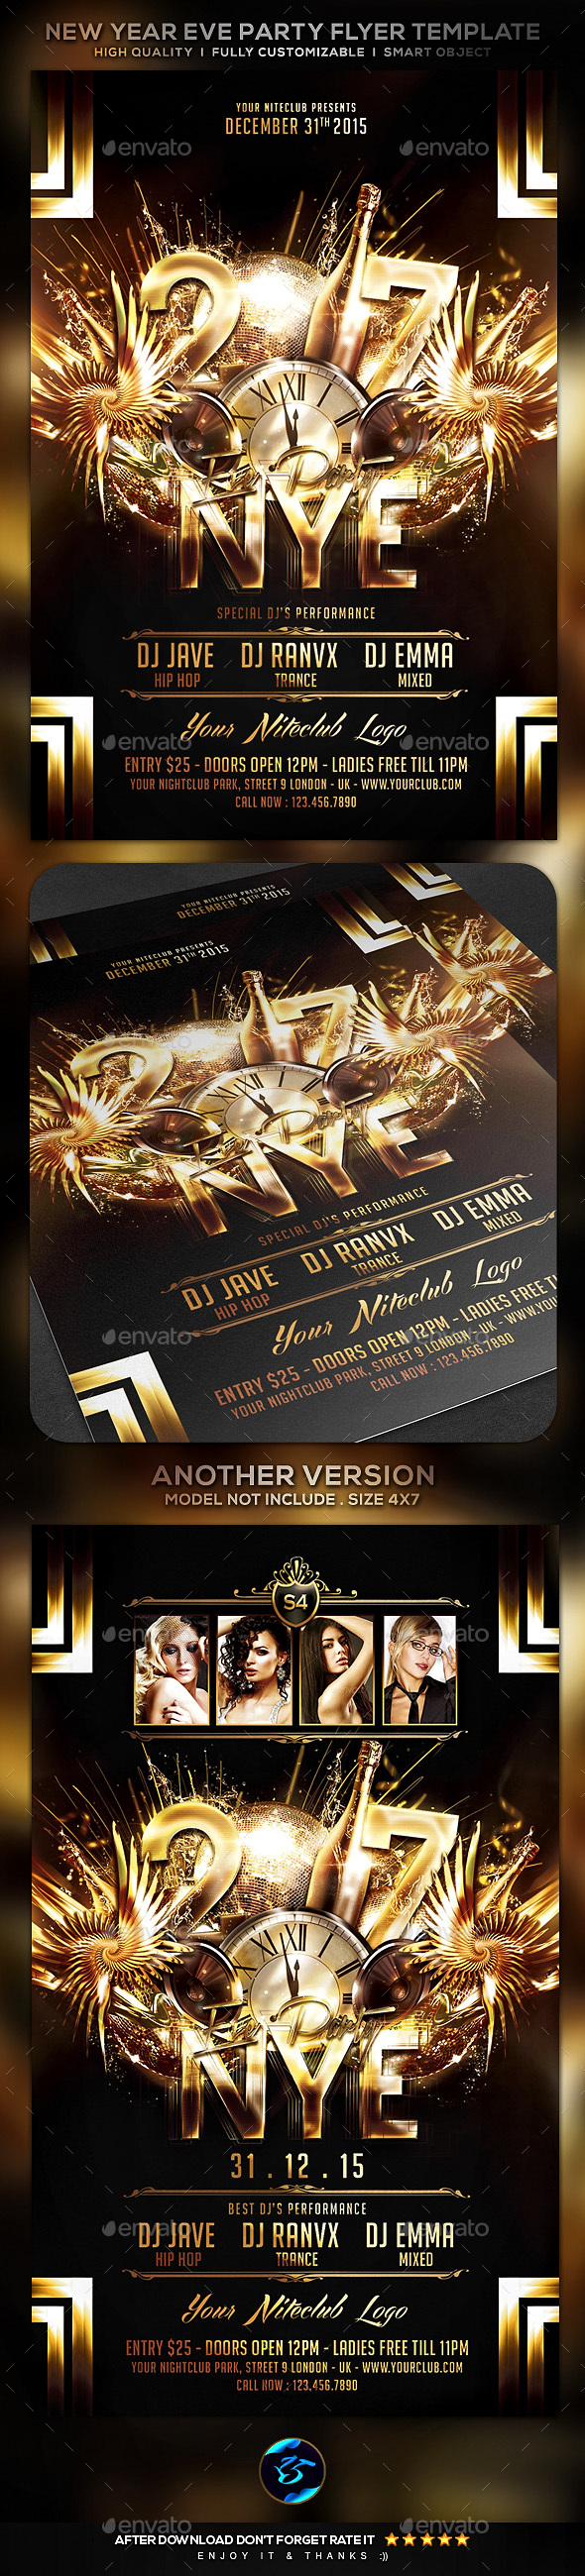 New Year Eve Party Flyer Template - Clubs & Parties Events